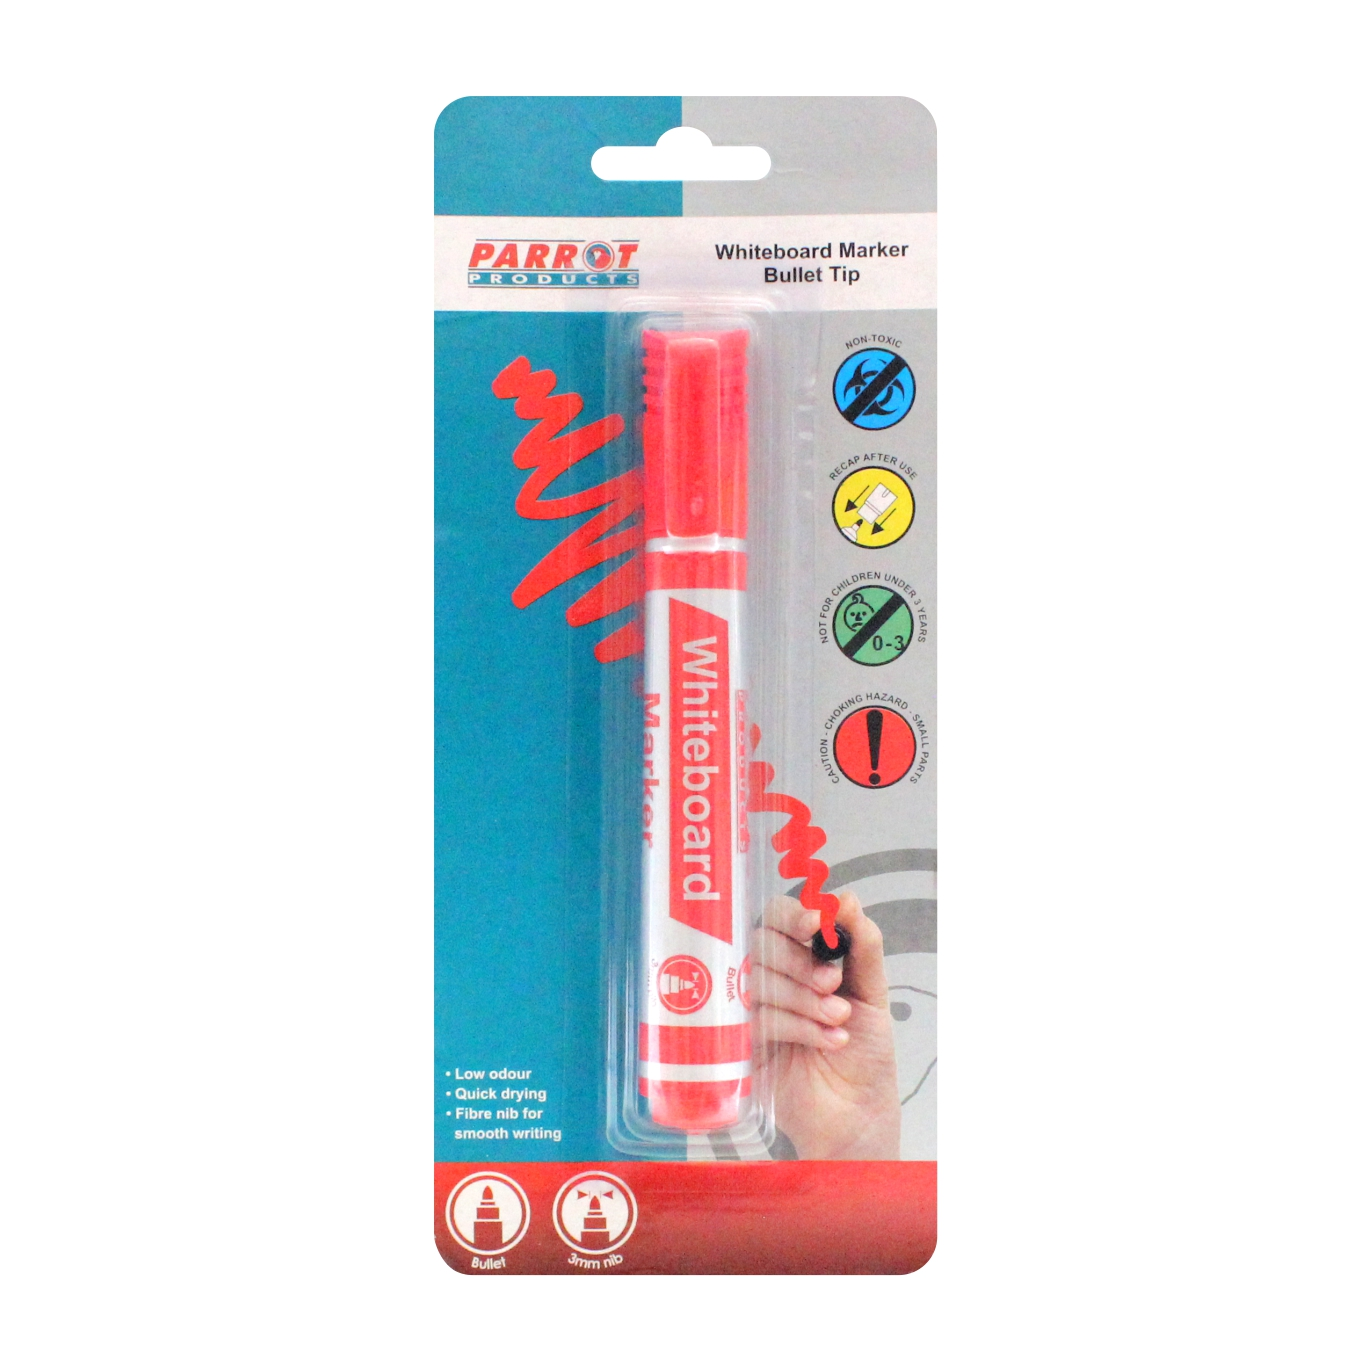 Whiteboard Marker (Bullet Tip, Carded, Red)